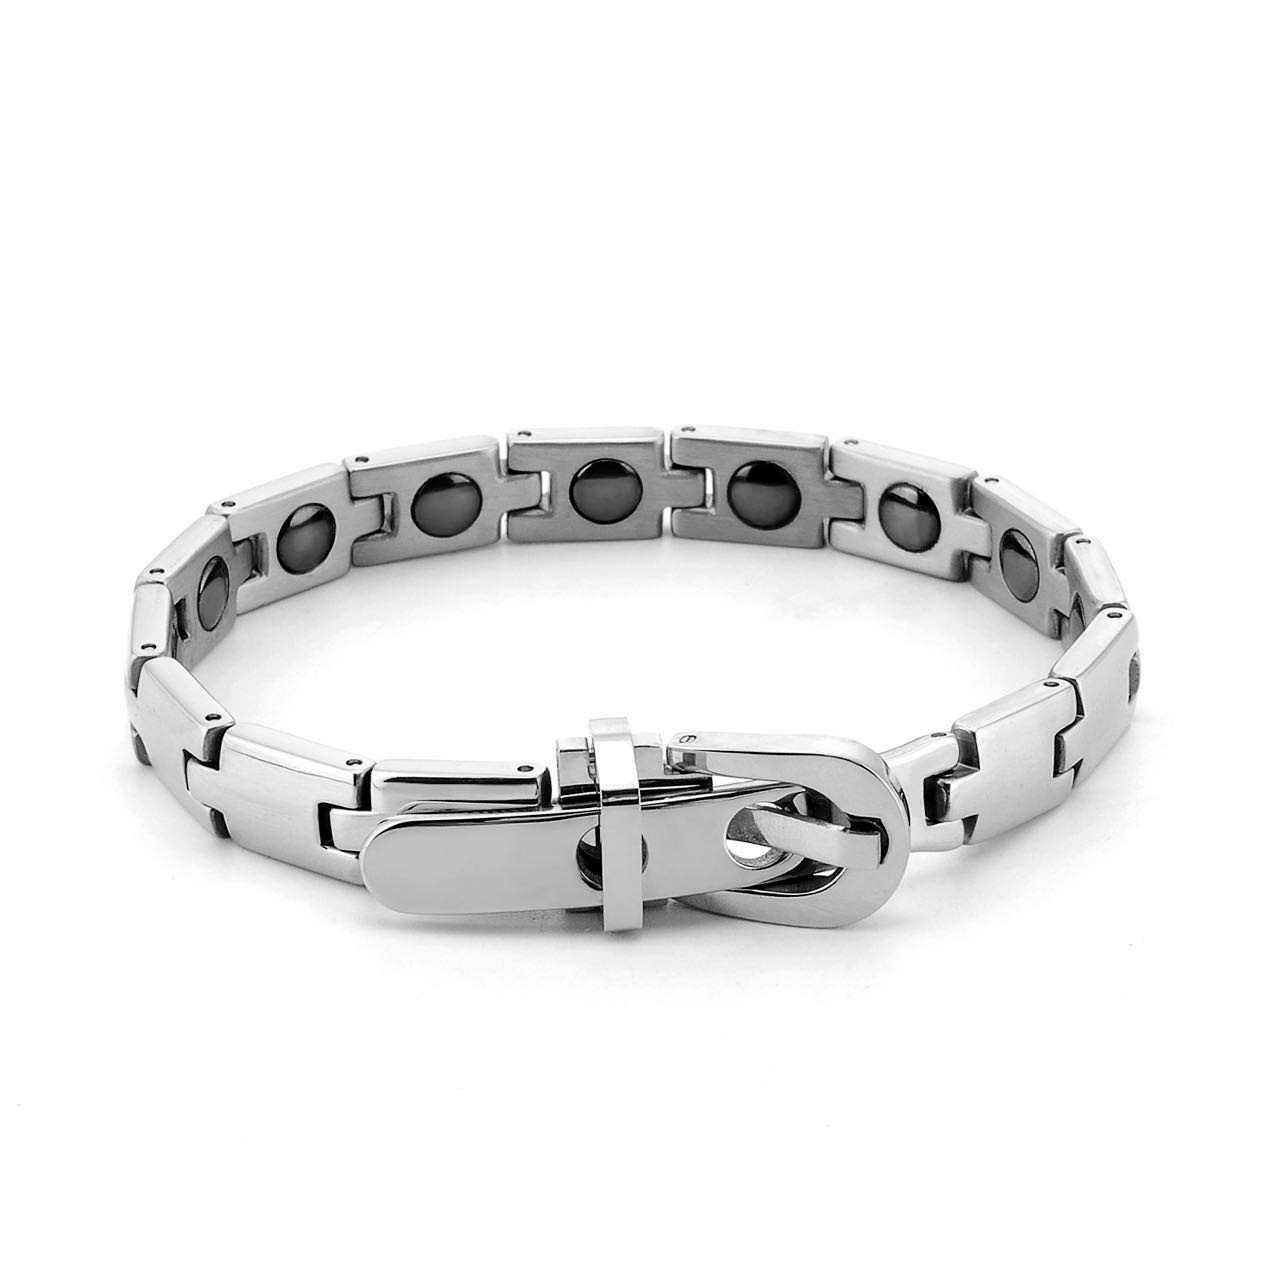 New Style Germanium 316L Stainless Steel Bracelet Manufacturers, New Style Germanium 316L Stainless Steel Bracelet Factory, Supply New Style Germanium 316L Stainless Steel Bracelet